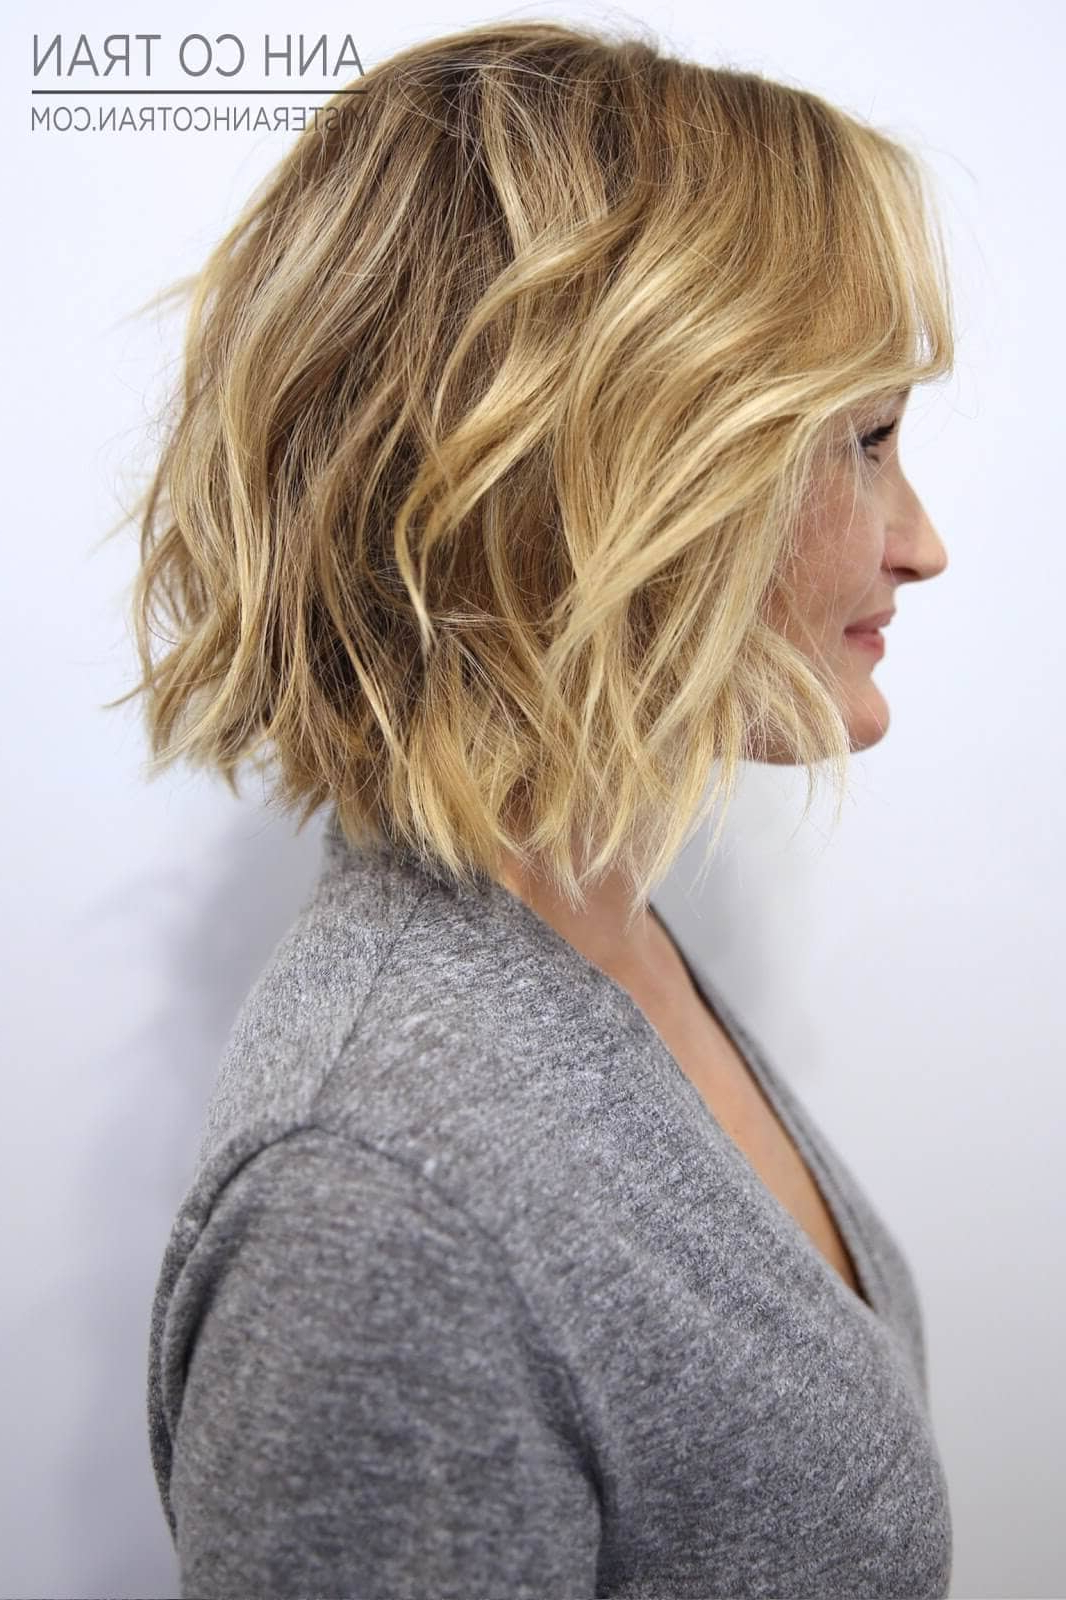 50 Ways To Wear Short Hair With Bangs For A Fresh New Look Intended For Tousled Razored Bob Hairstyles (View 9 of 20)